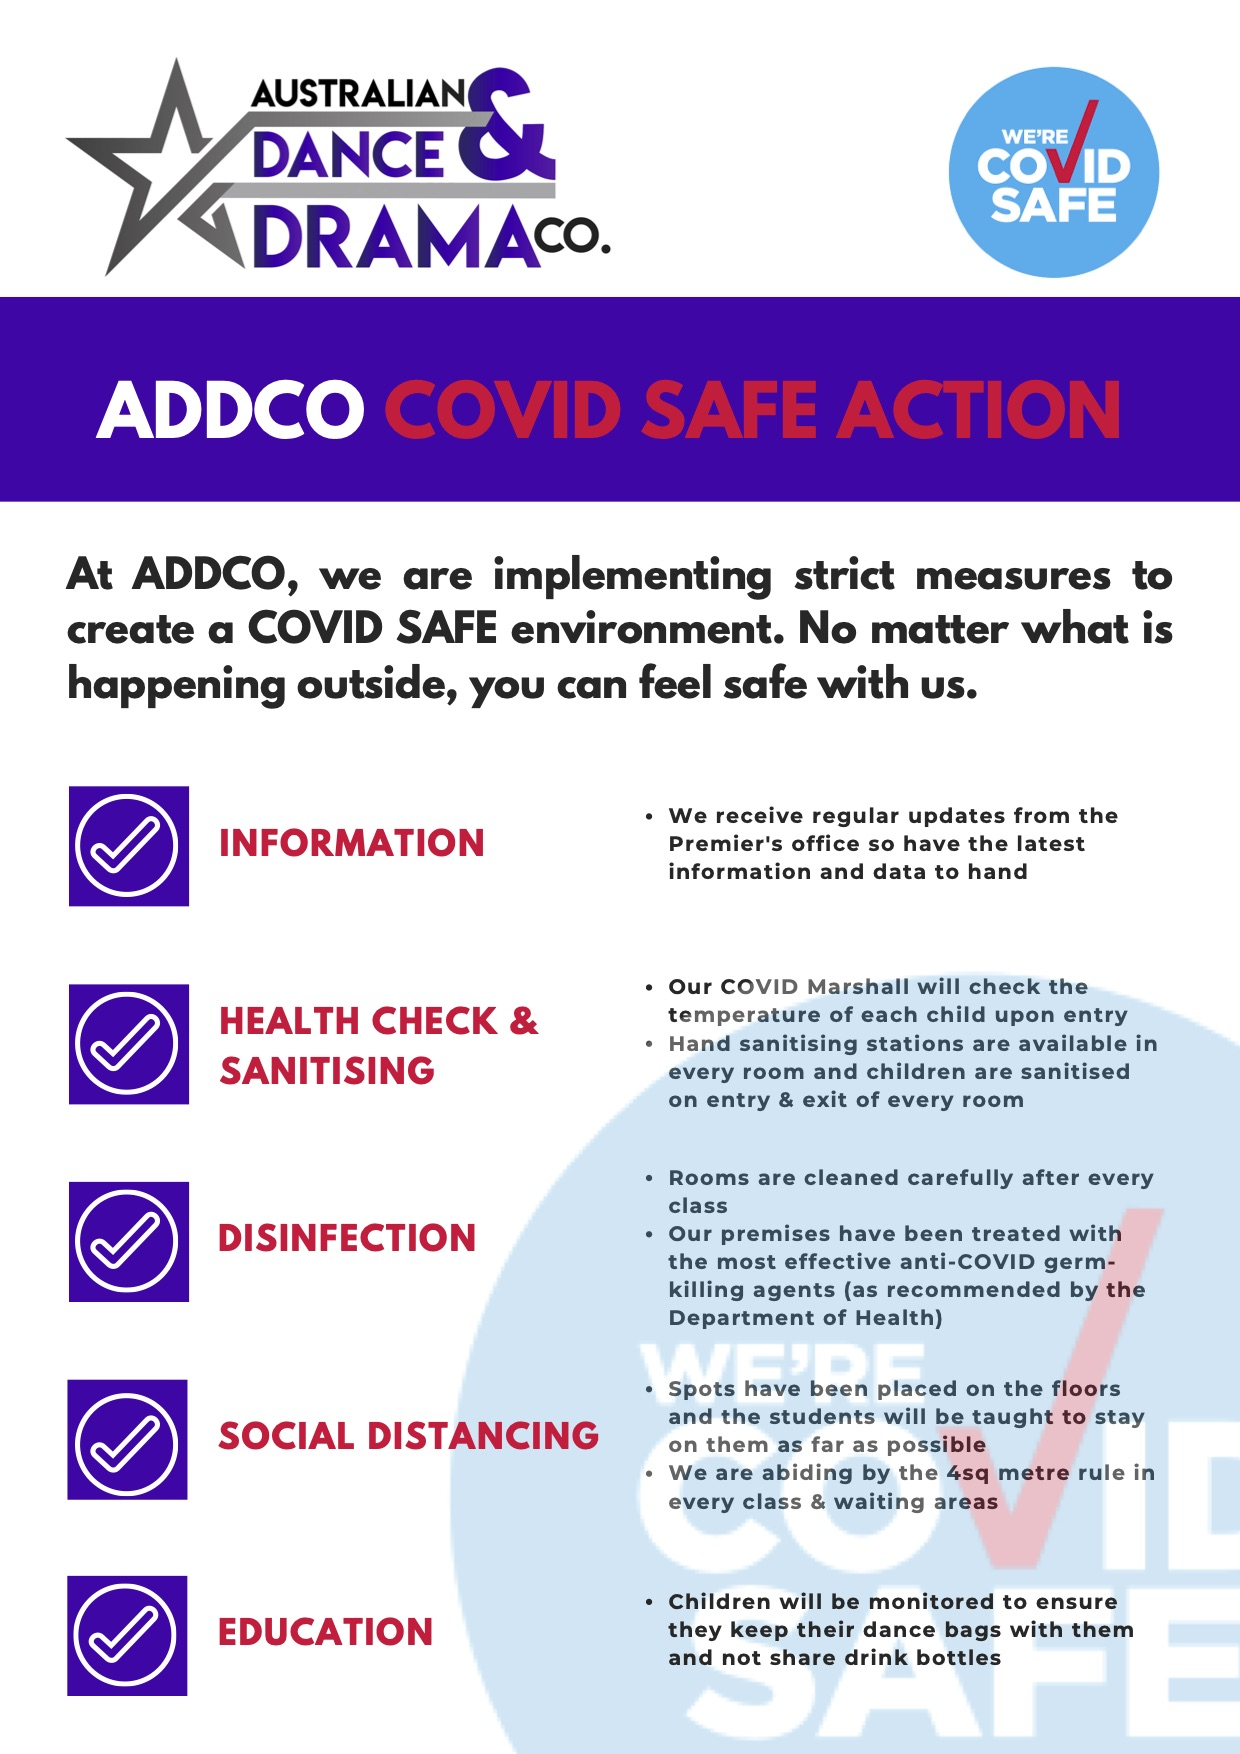 ADDCo covid safe action plan